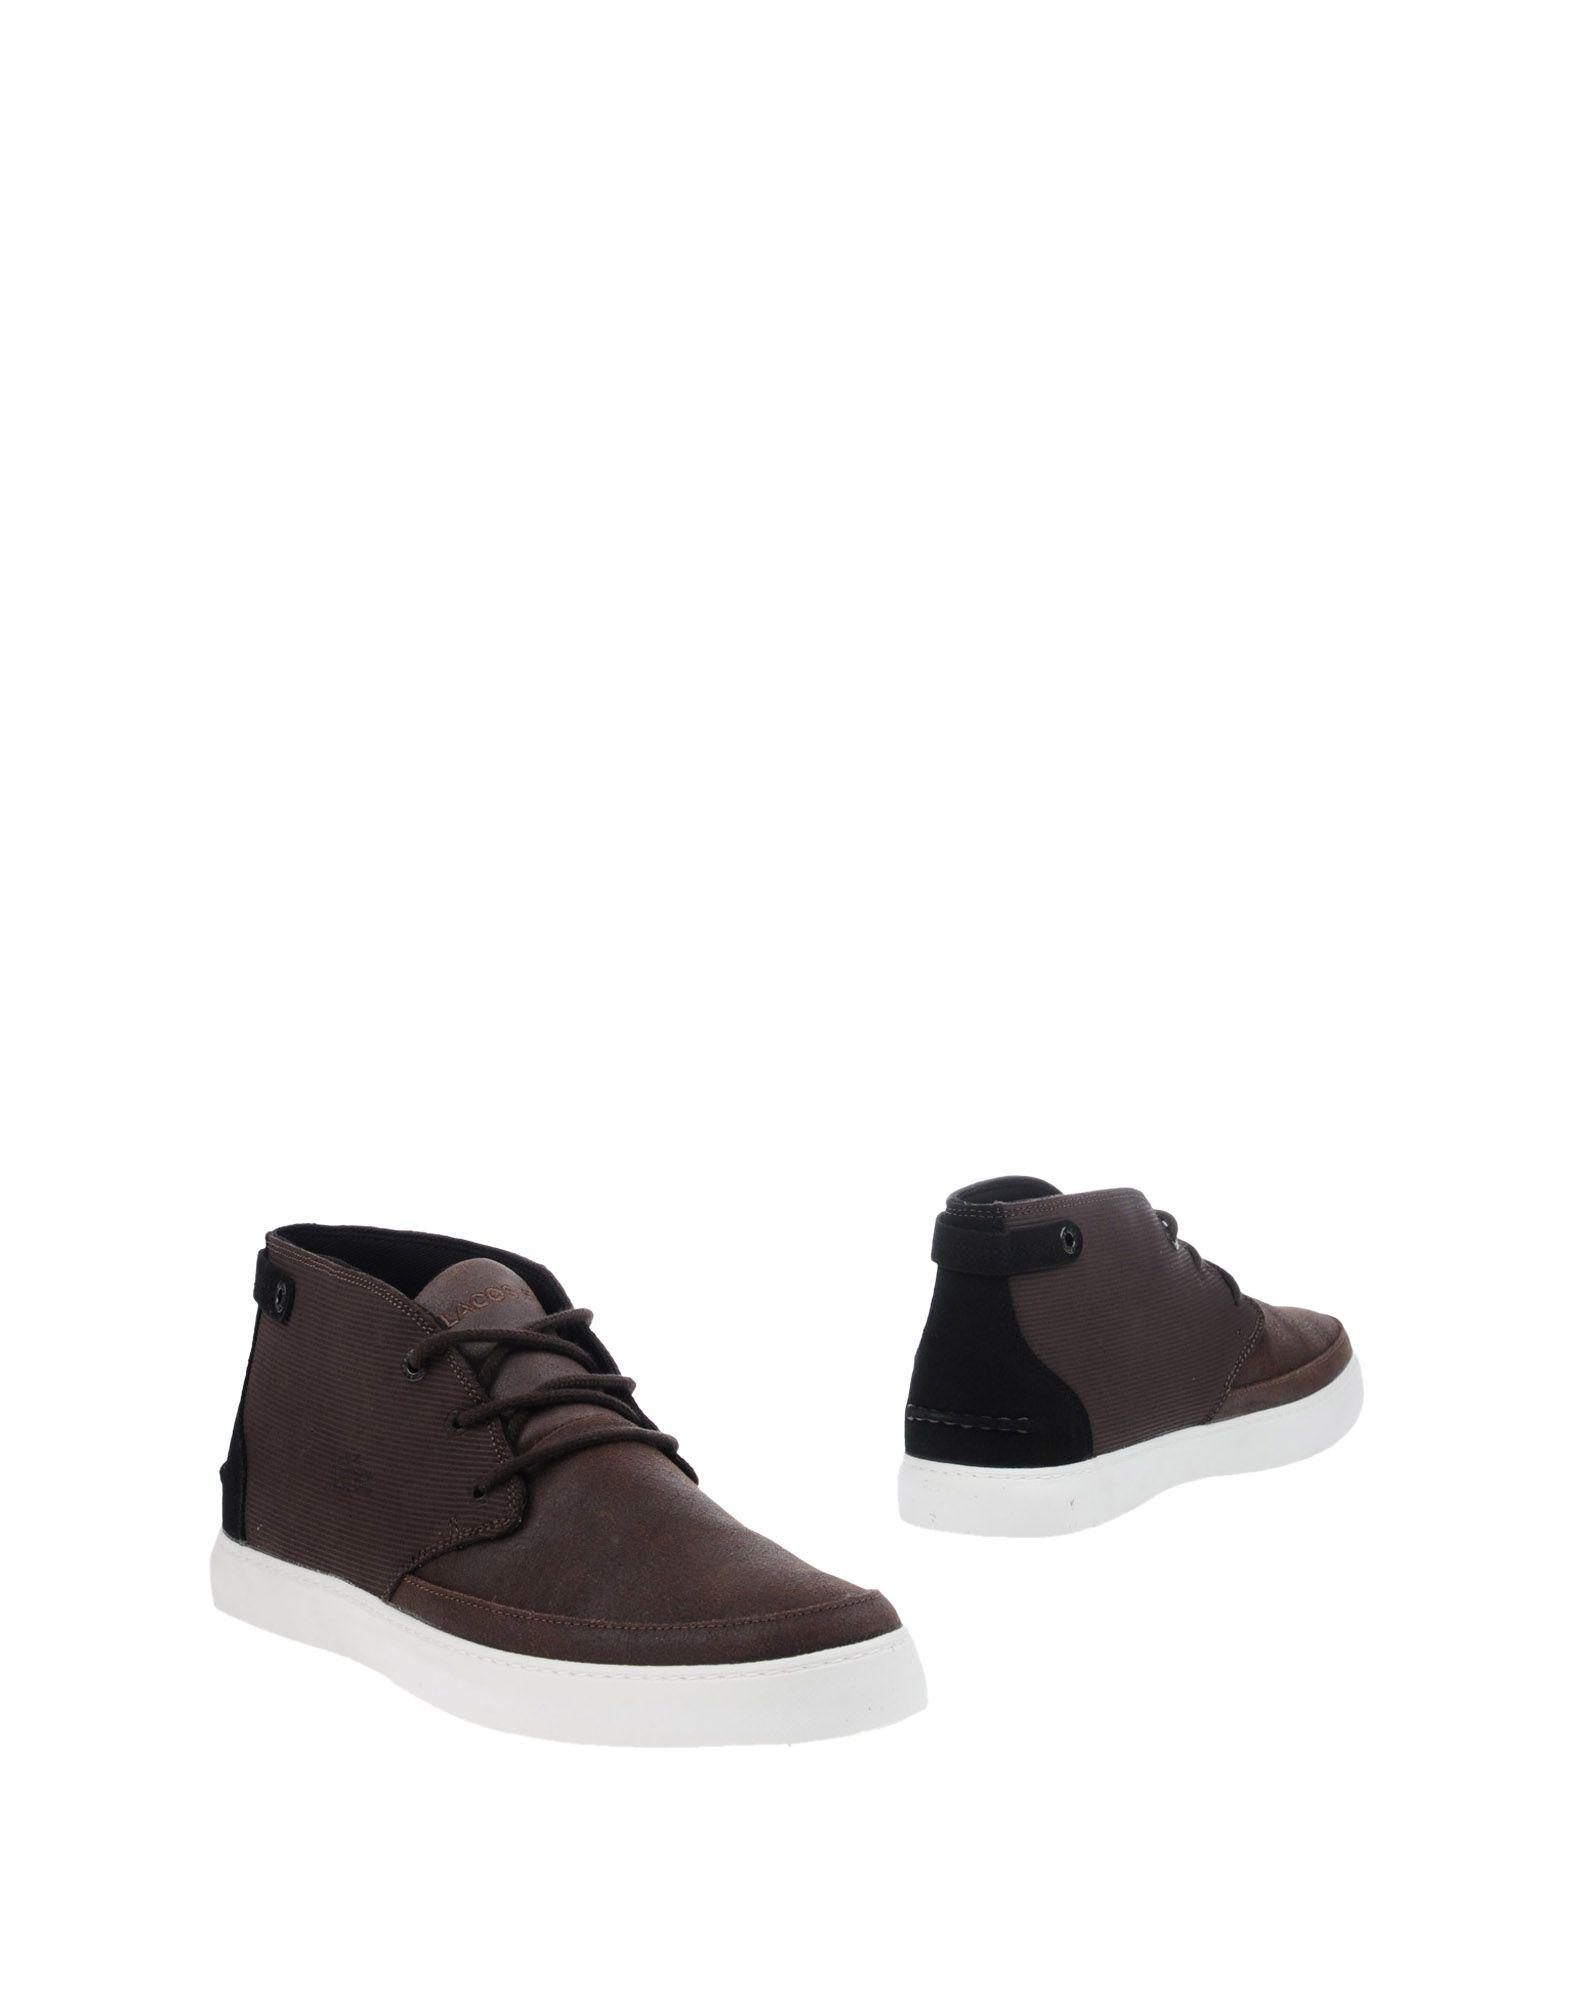 b8211139f4fdb6 Lyst - Lacoste Ankle Boots in Brown for Men